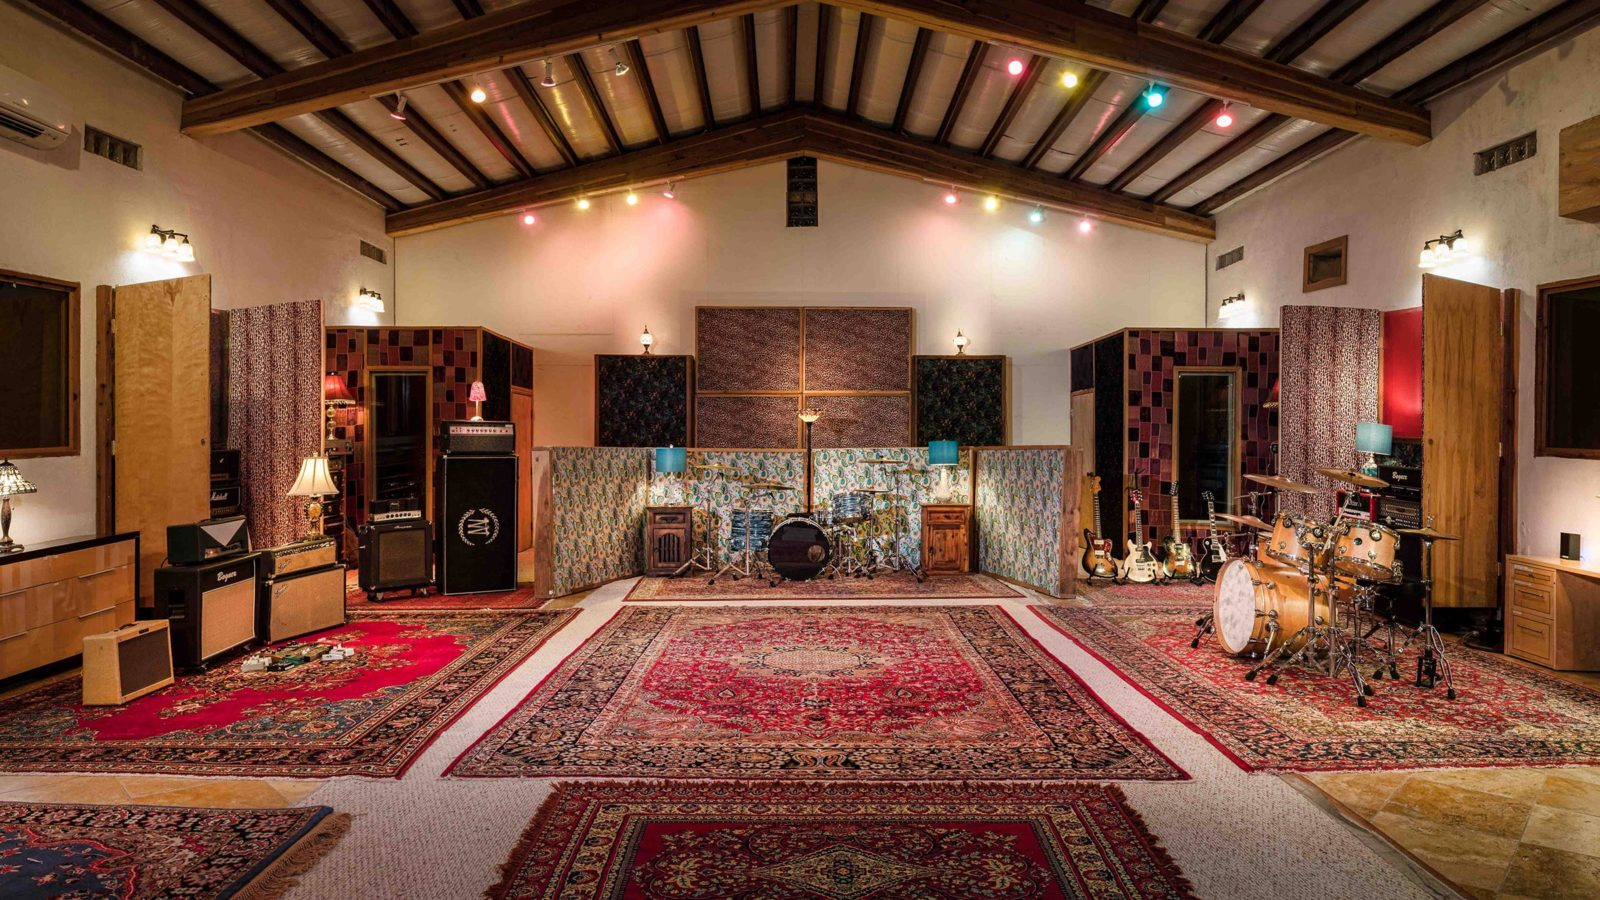 Studio Neve - Tracking Room from center